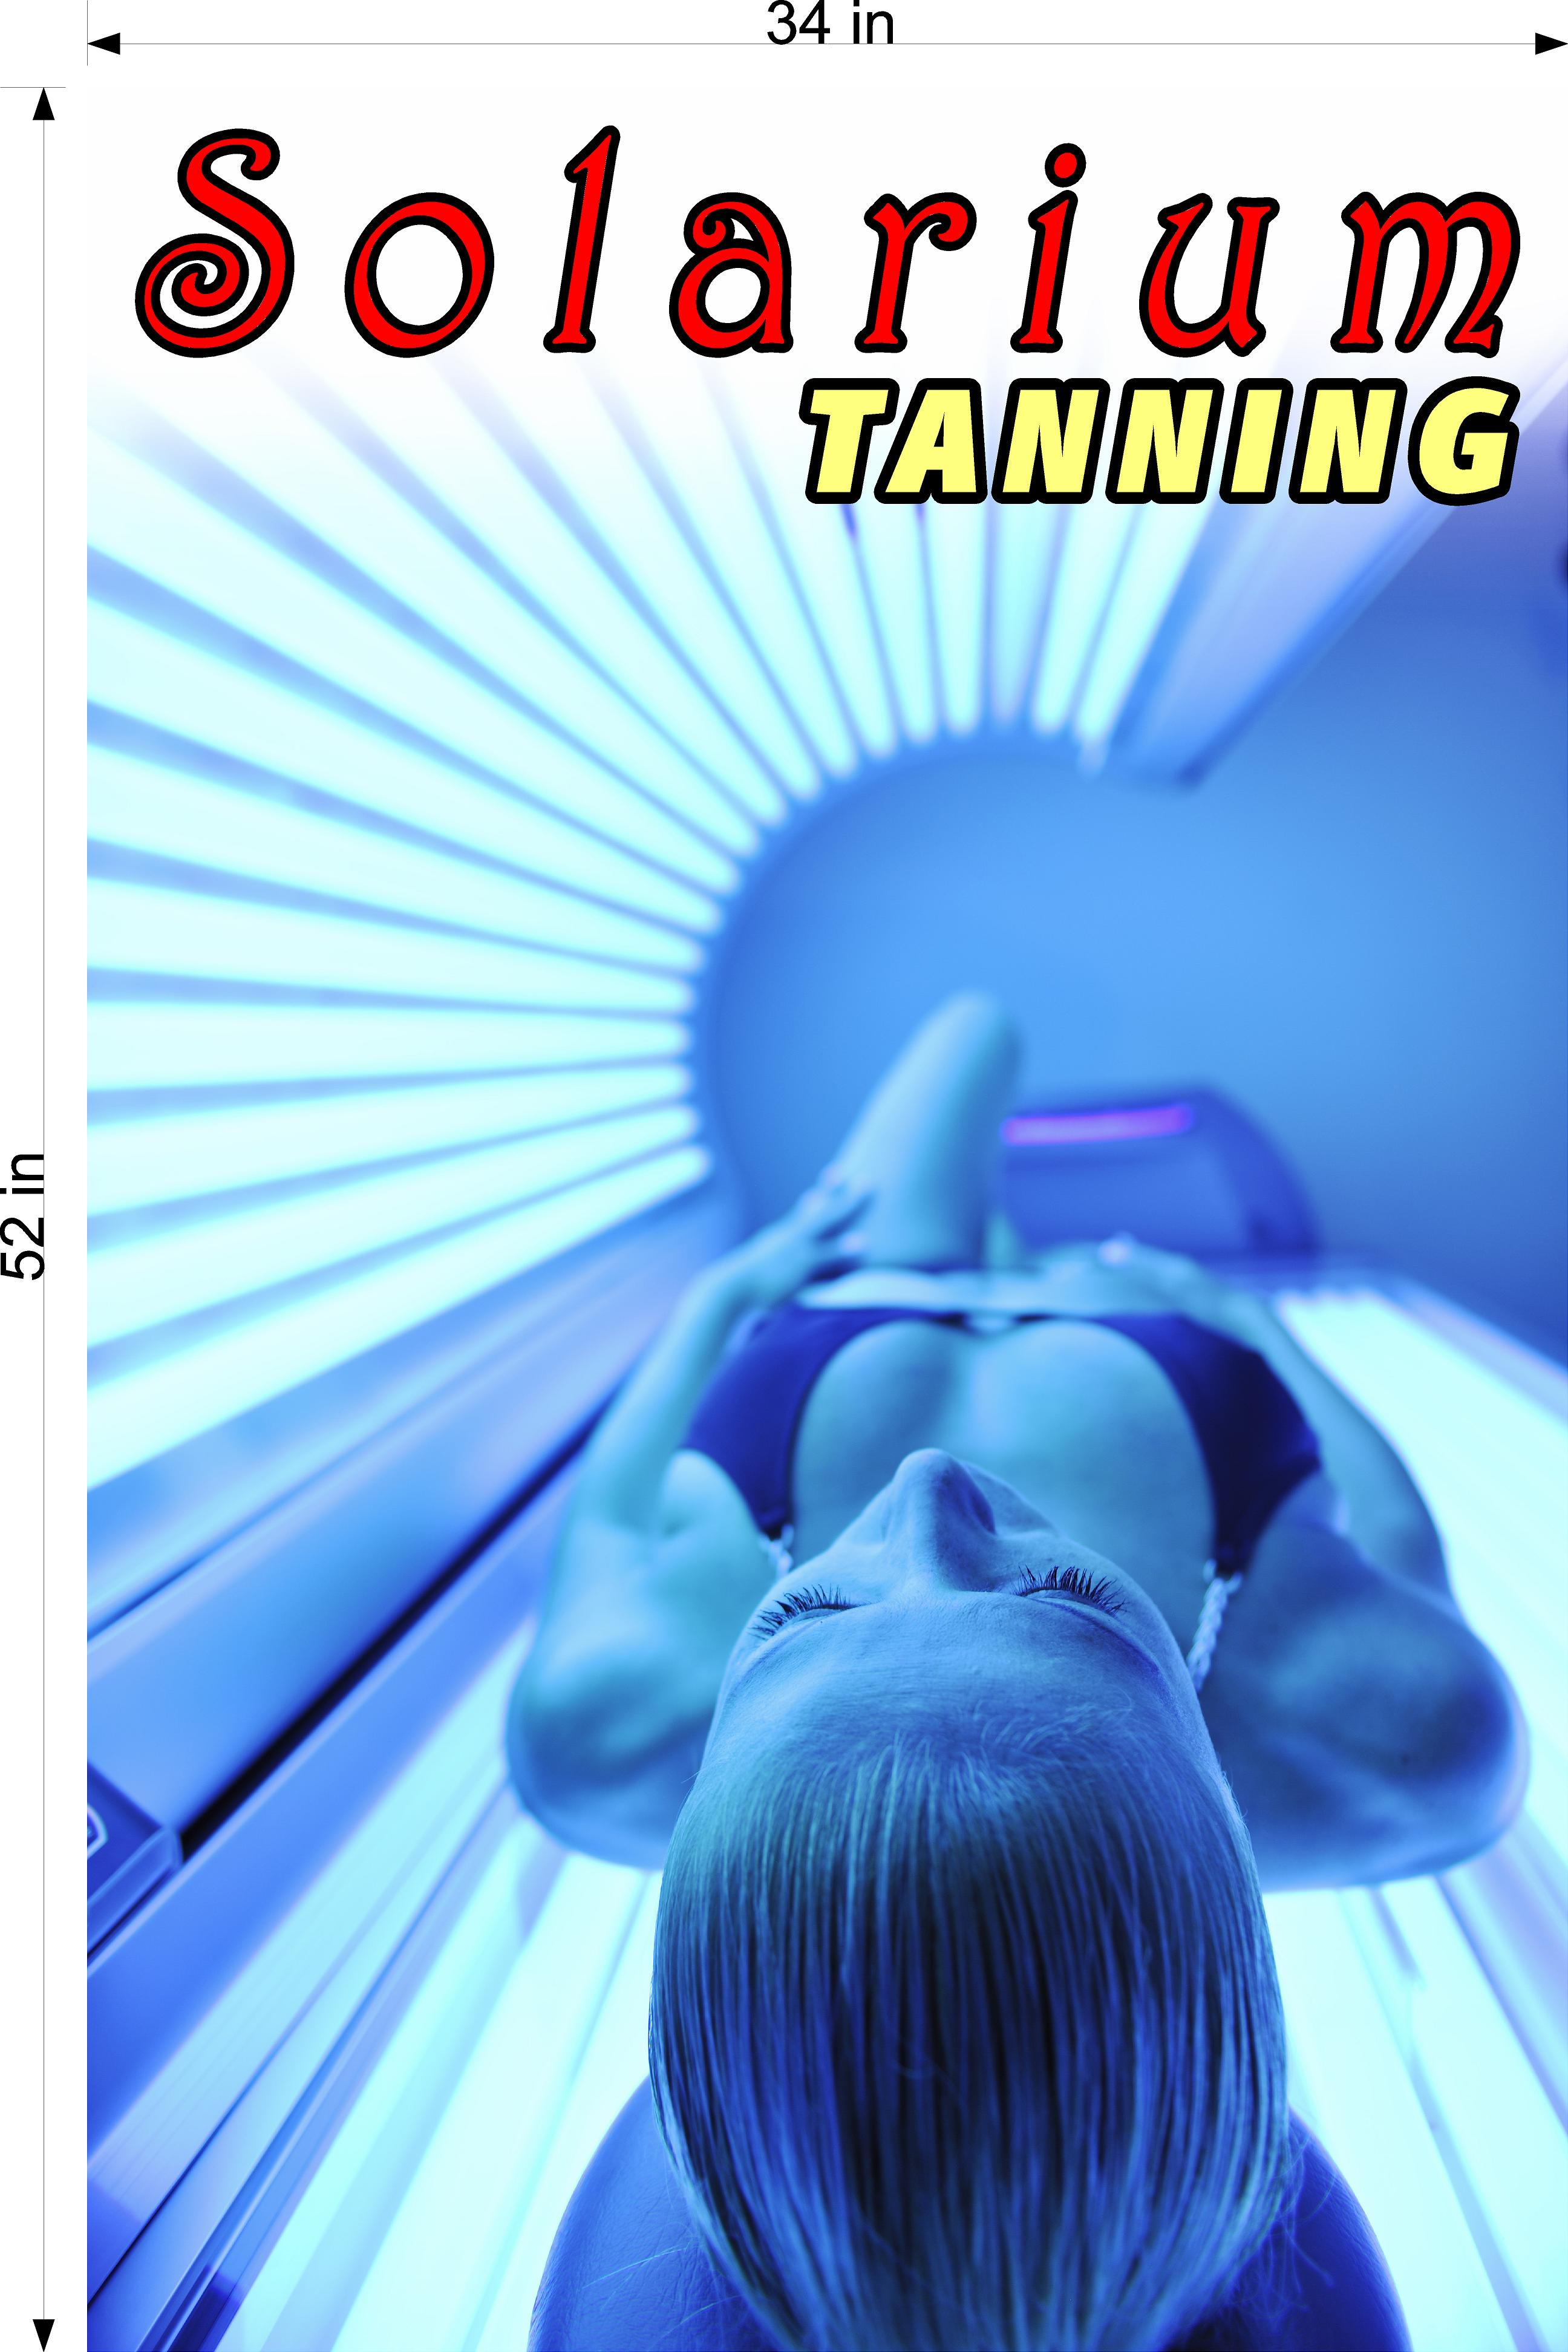 Tanning 02 Wallpaper Poster Decal with Adhesive Backing Wall Sticker Decor Interior Sign Spray Service Solarium Vertical